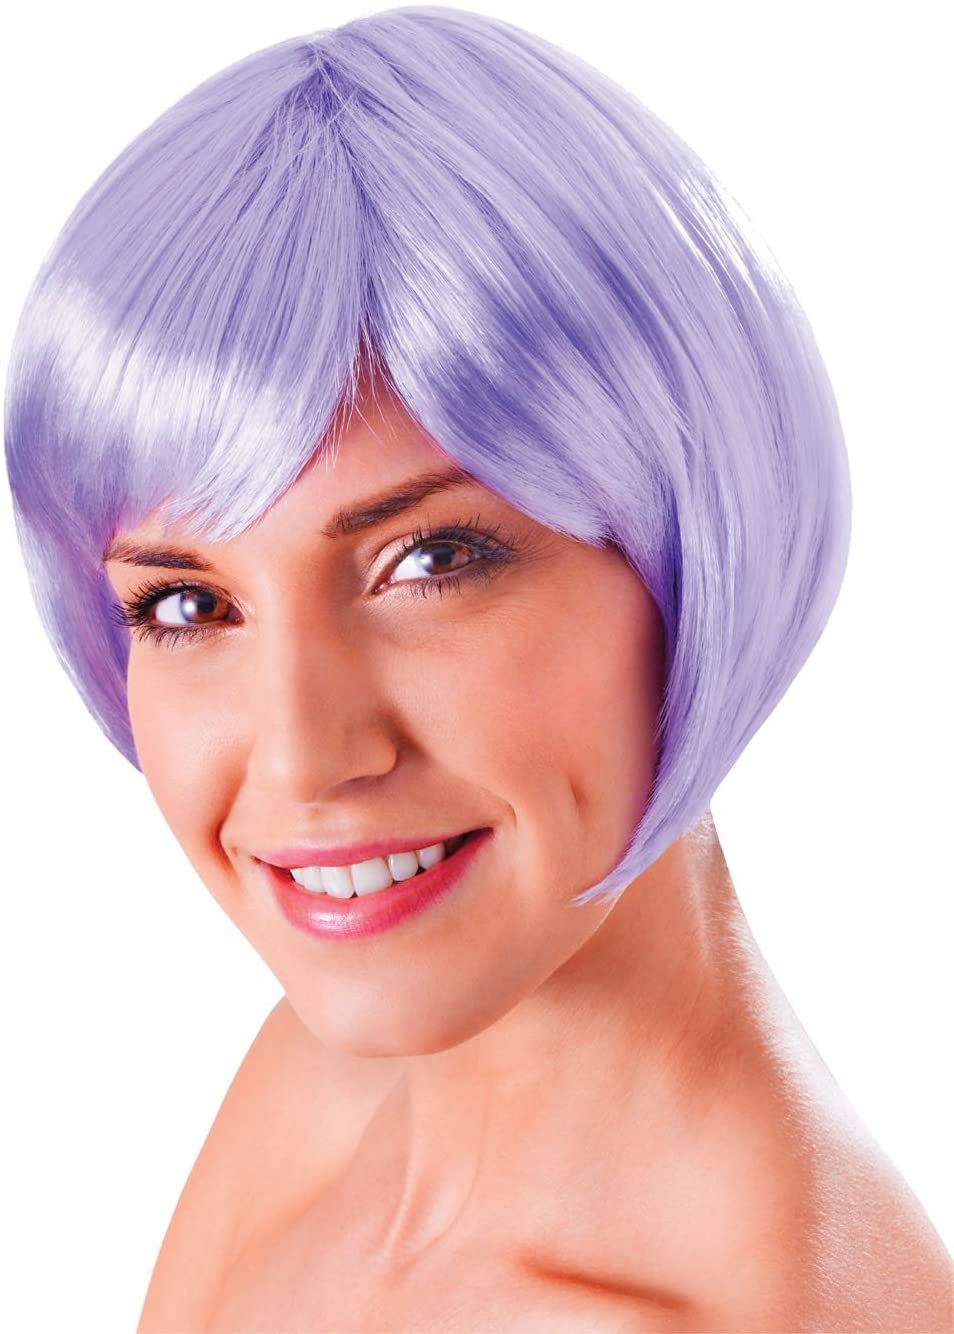 Bristol Novelty BW866 Flirty Flick Wig, Womens, Lilac, One Size